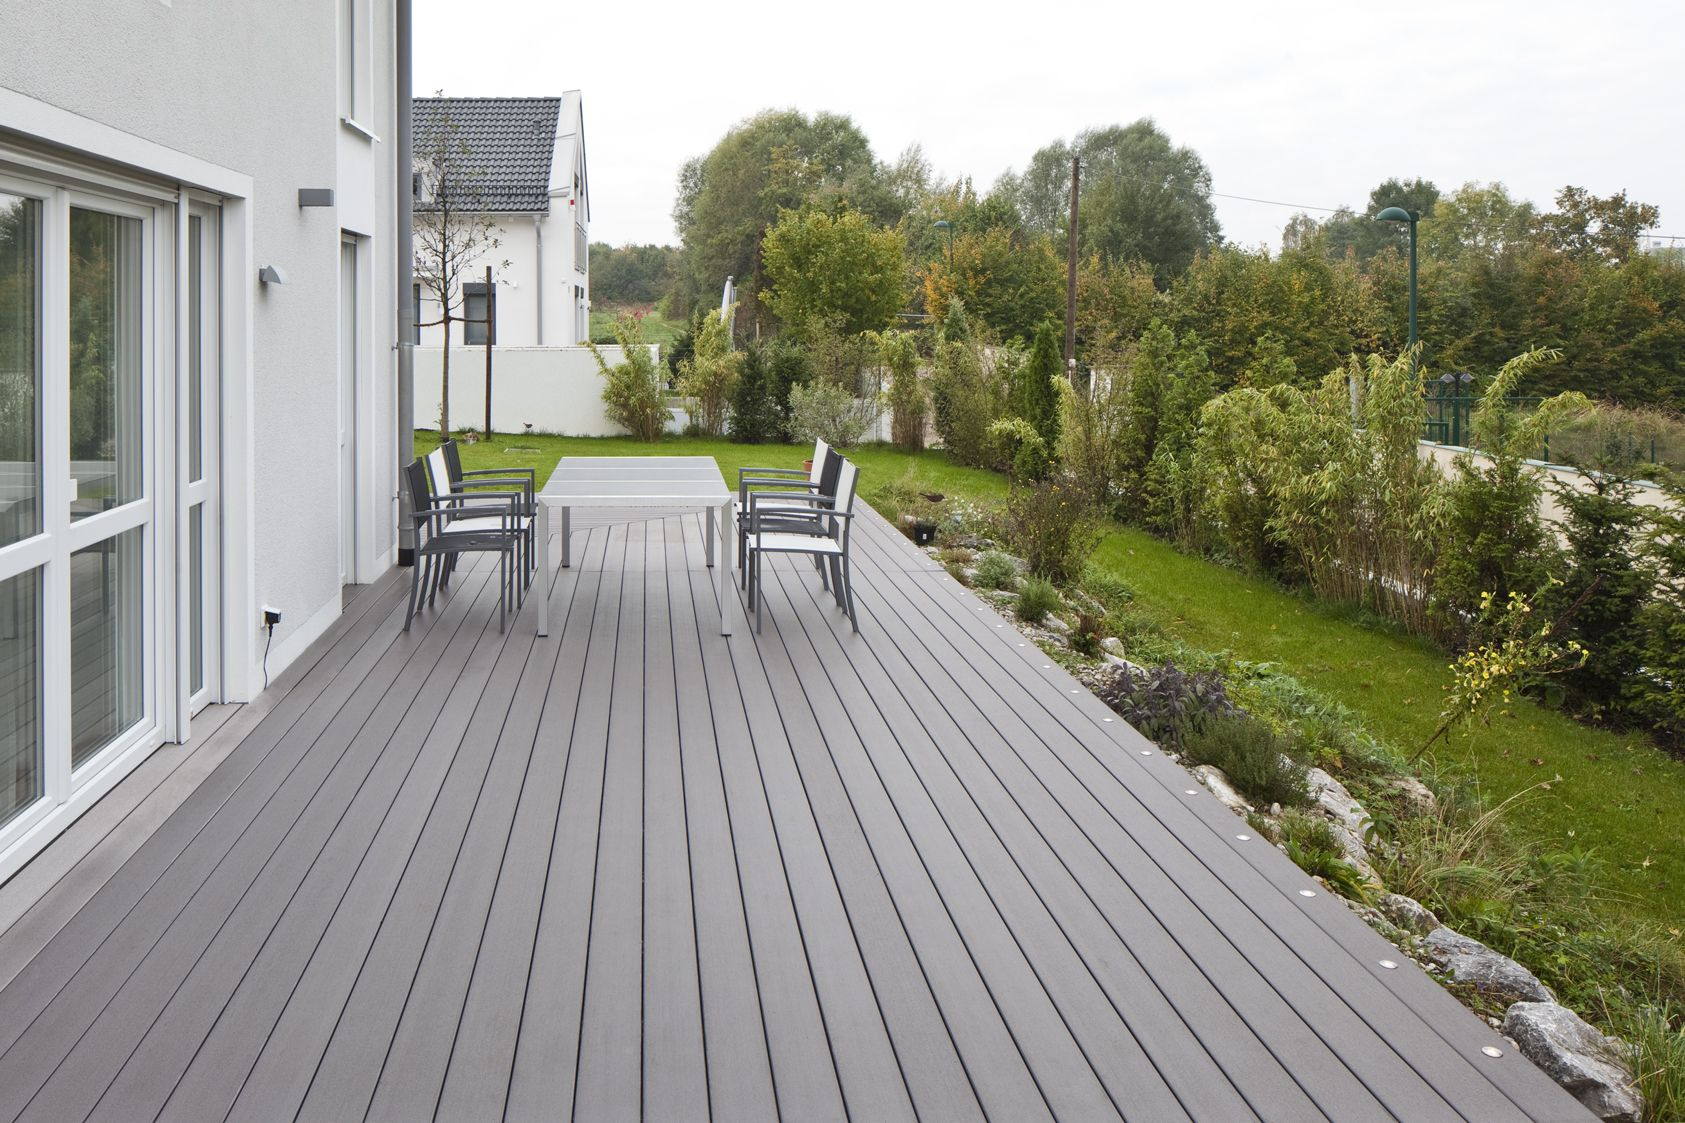 Outdoor decking covering wood polymer composite decking outdoor decking covering wood polymer composite decking singapore baanklon Images